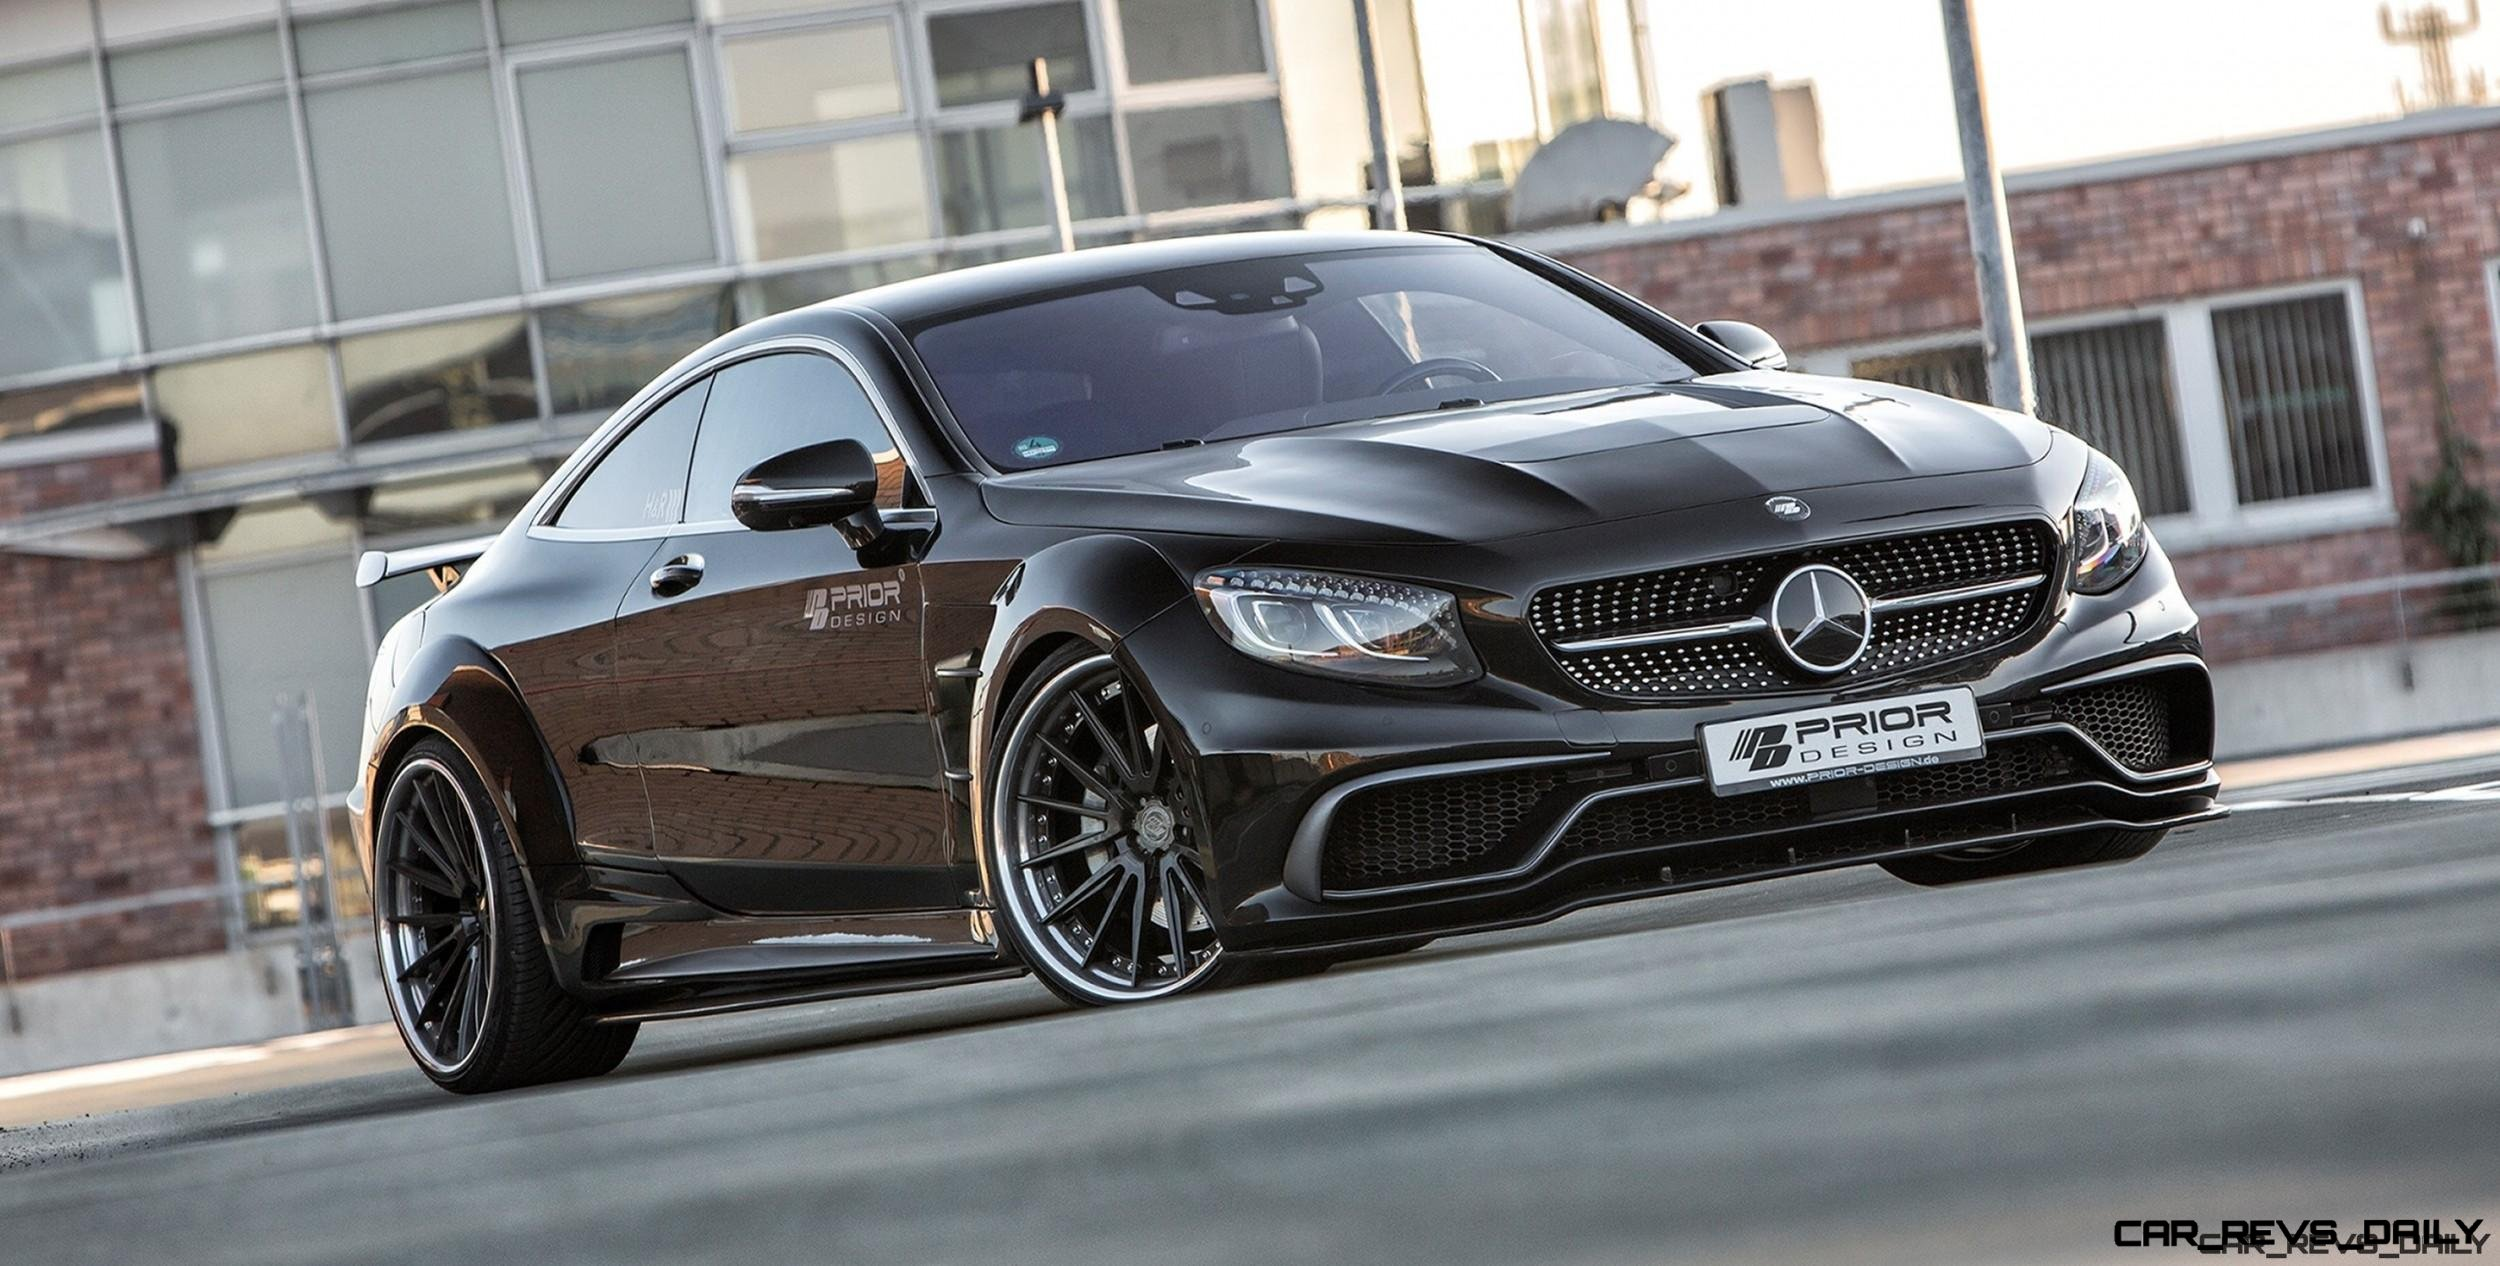 IMG_0375_prior-design_PD75SC_Widebody_aero-kit_PD4Forged_Wheels_S_Coupe_25